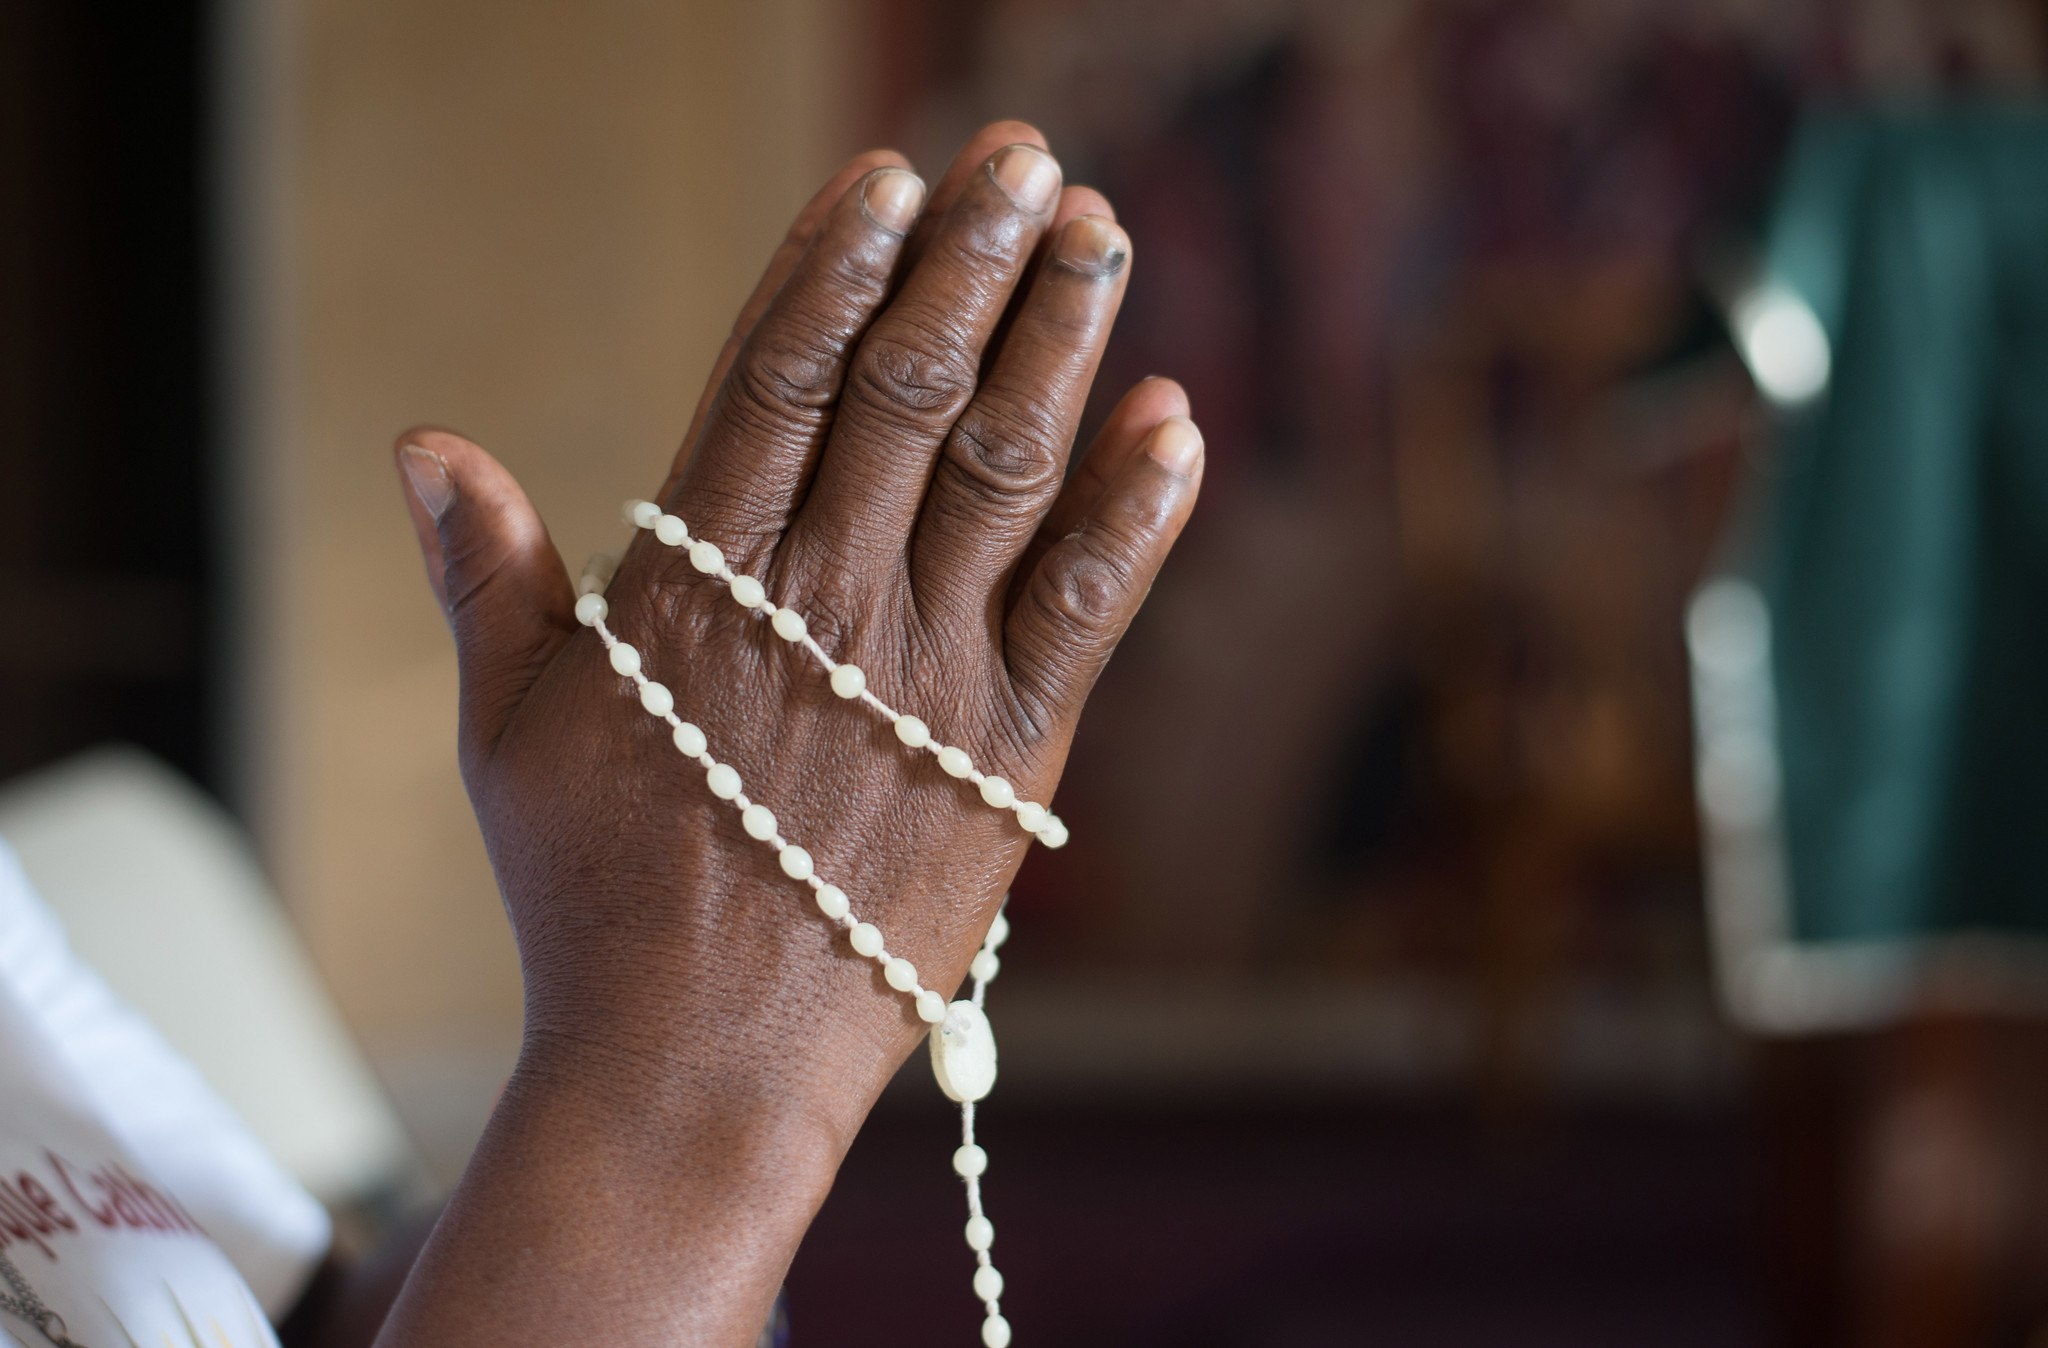 Hands praying with rosary around the rosary